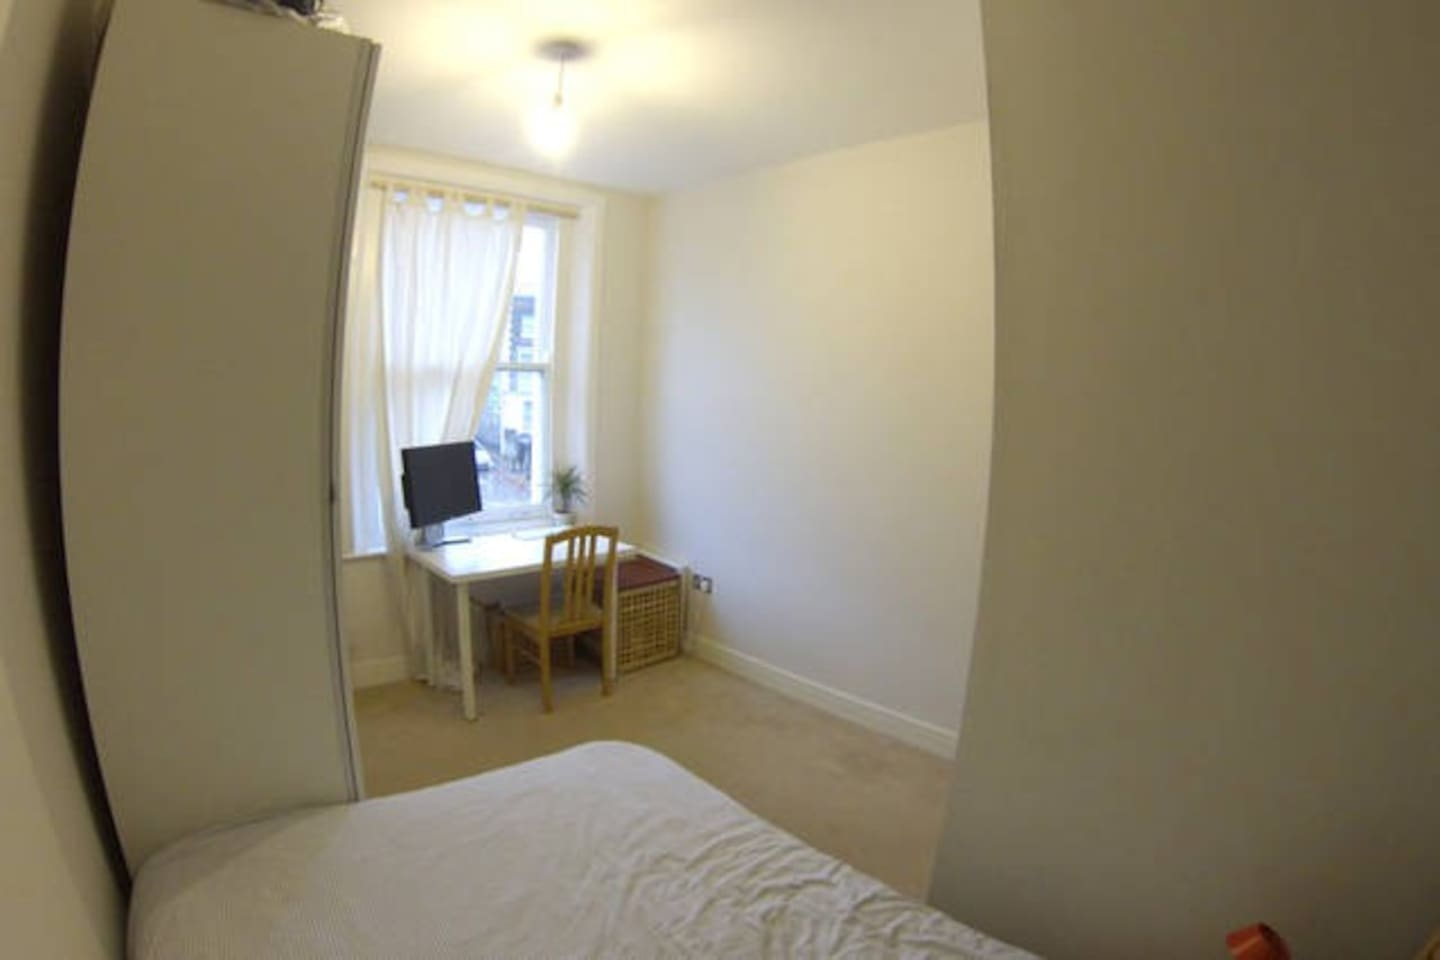 Bedroom no.2: Facing the road, plenty of light and large window. Equipped with desk and chair.